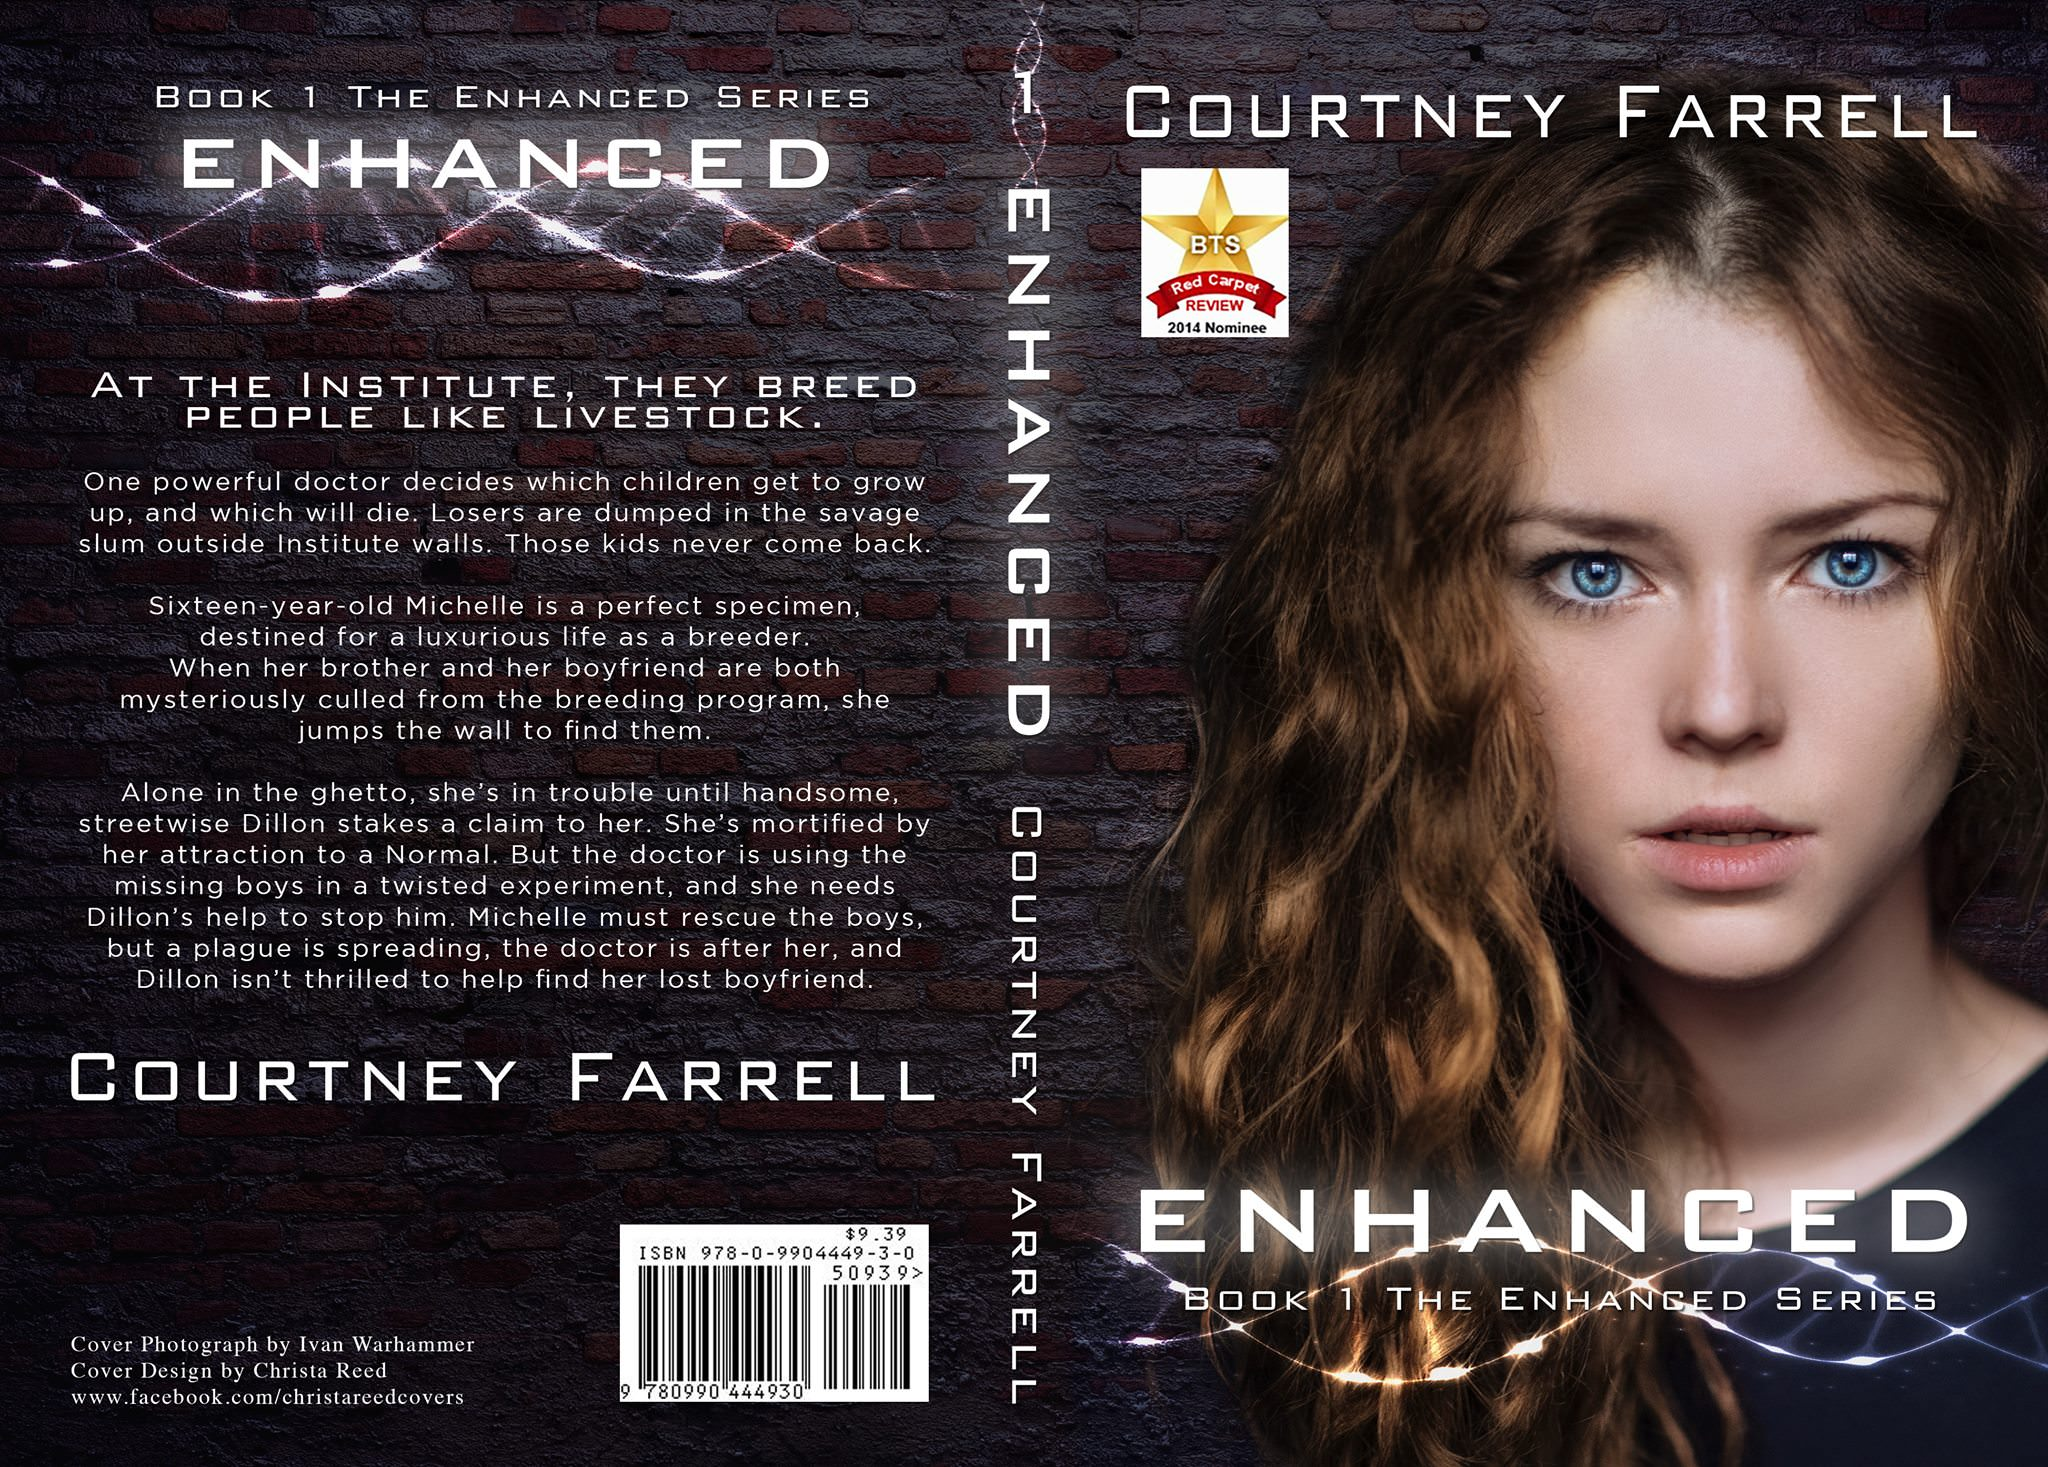 science fiction thriller book cover design